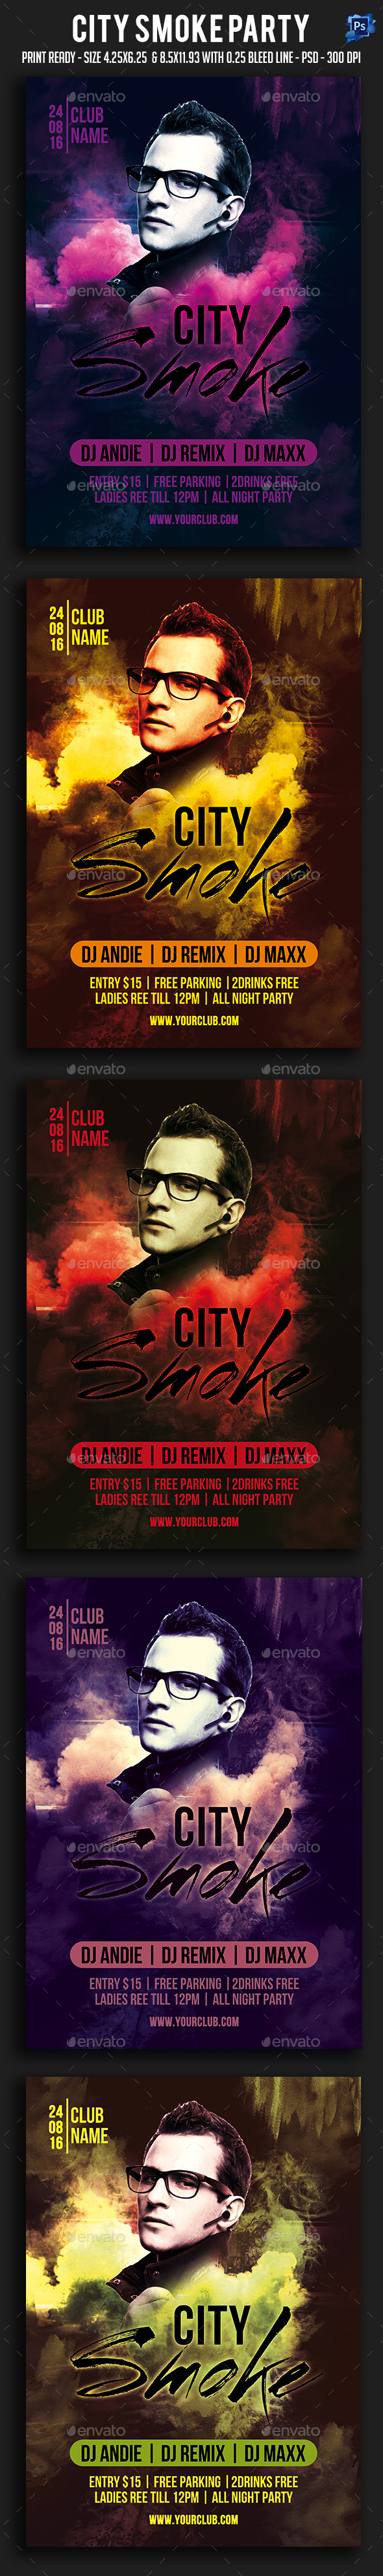 City Smoke Party Flyer - Clubs & Parties Events